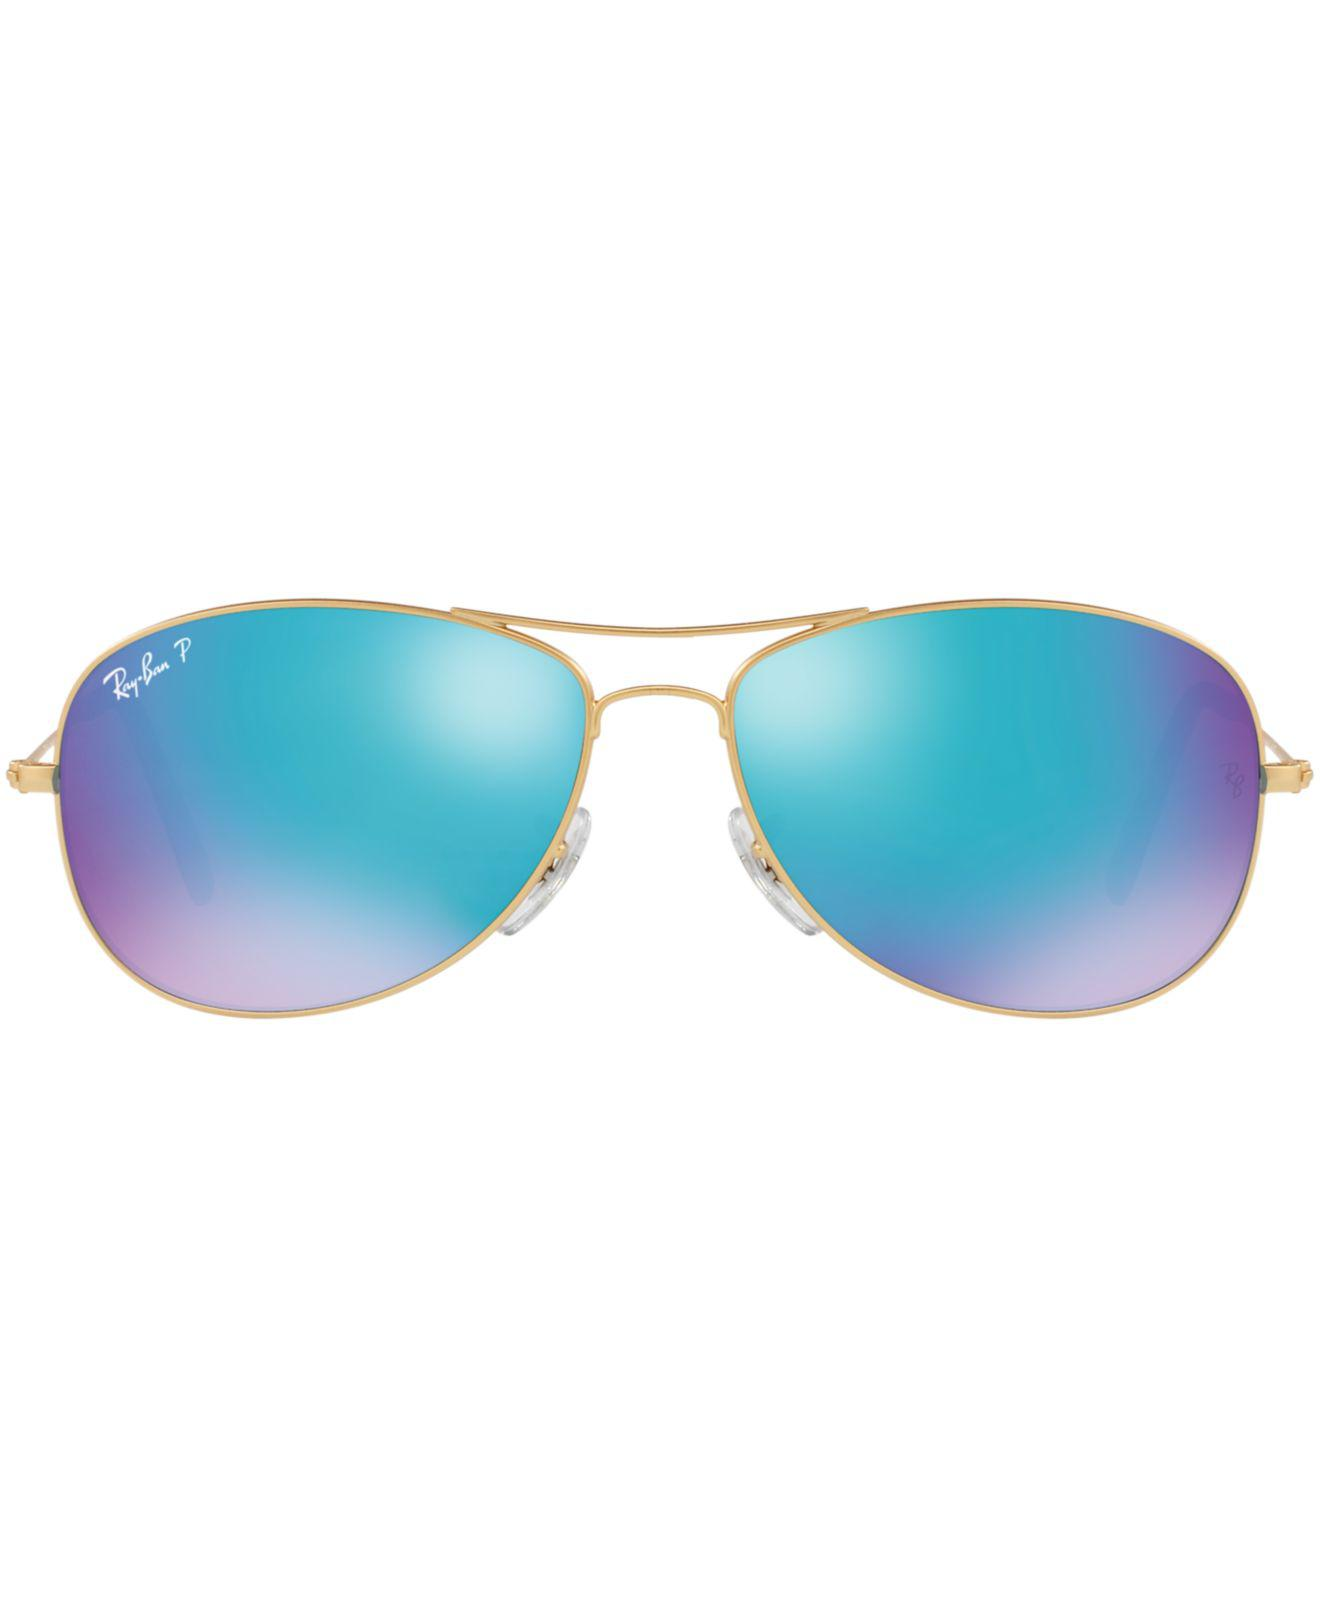 b1cd90476f Lyst - Ray-Ban Polarized Chromance Collection Sunglasses